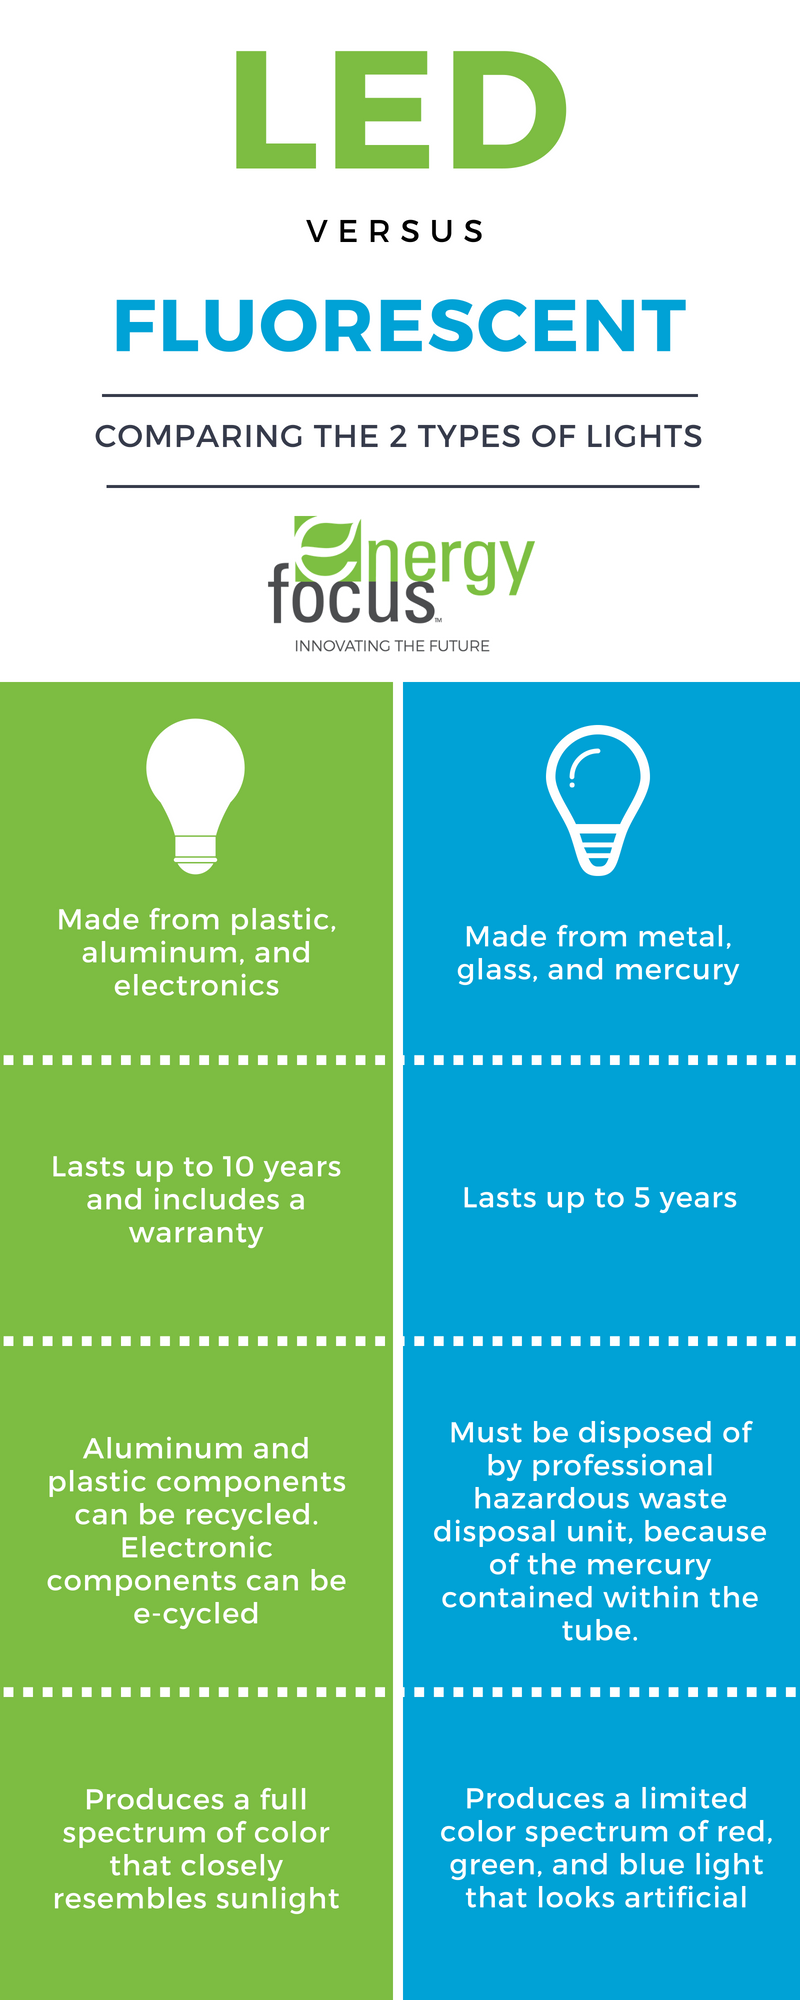 LED Versus Fluorescent Tube Comparison Infographic